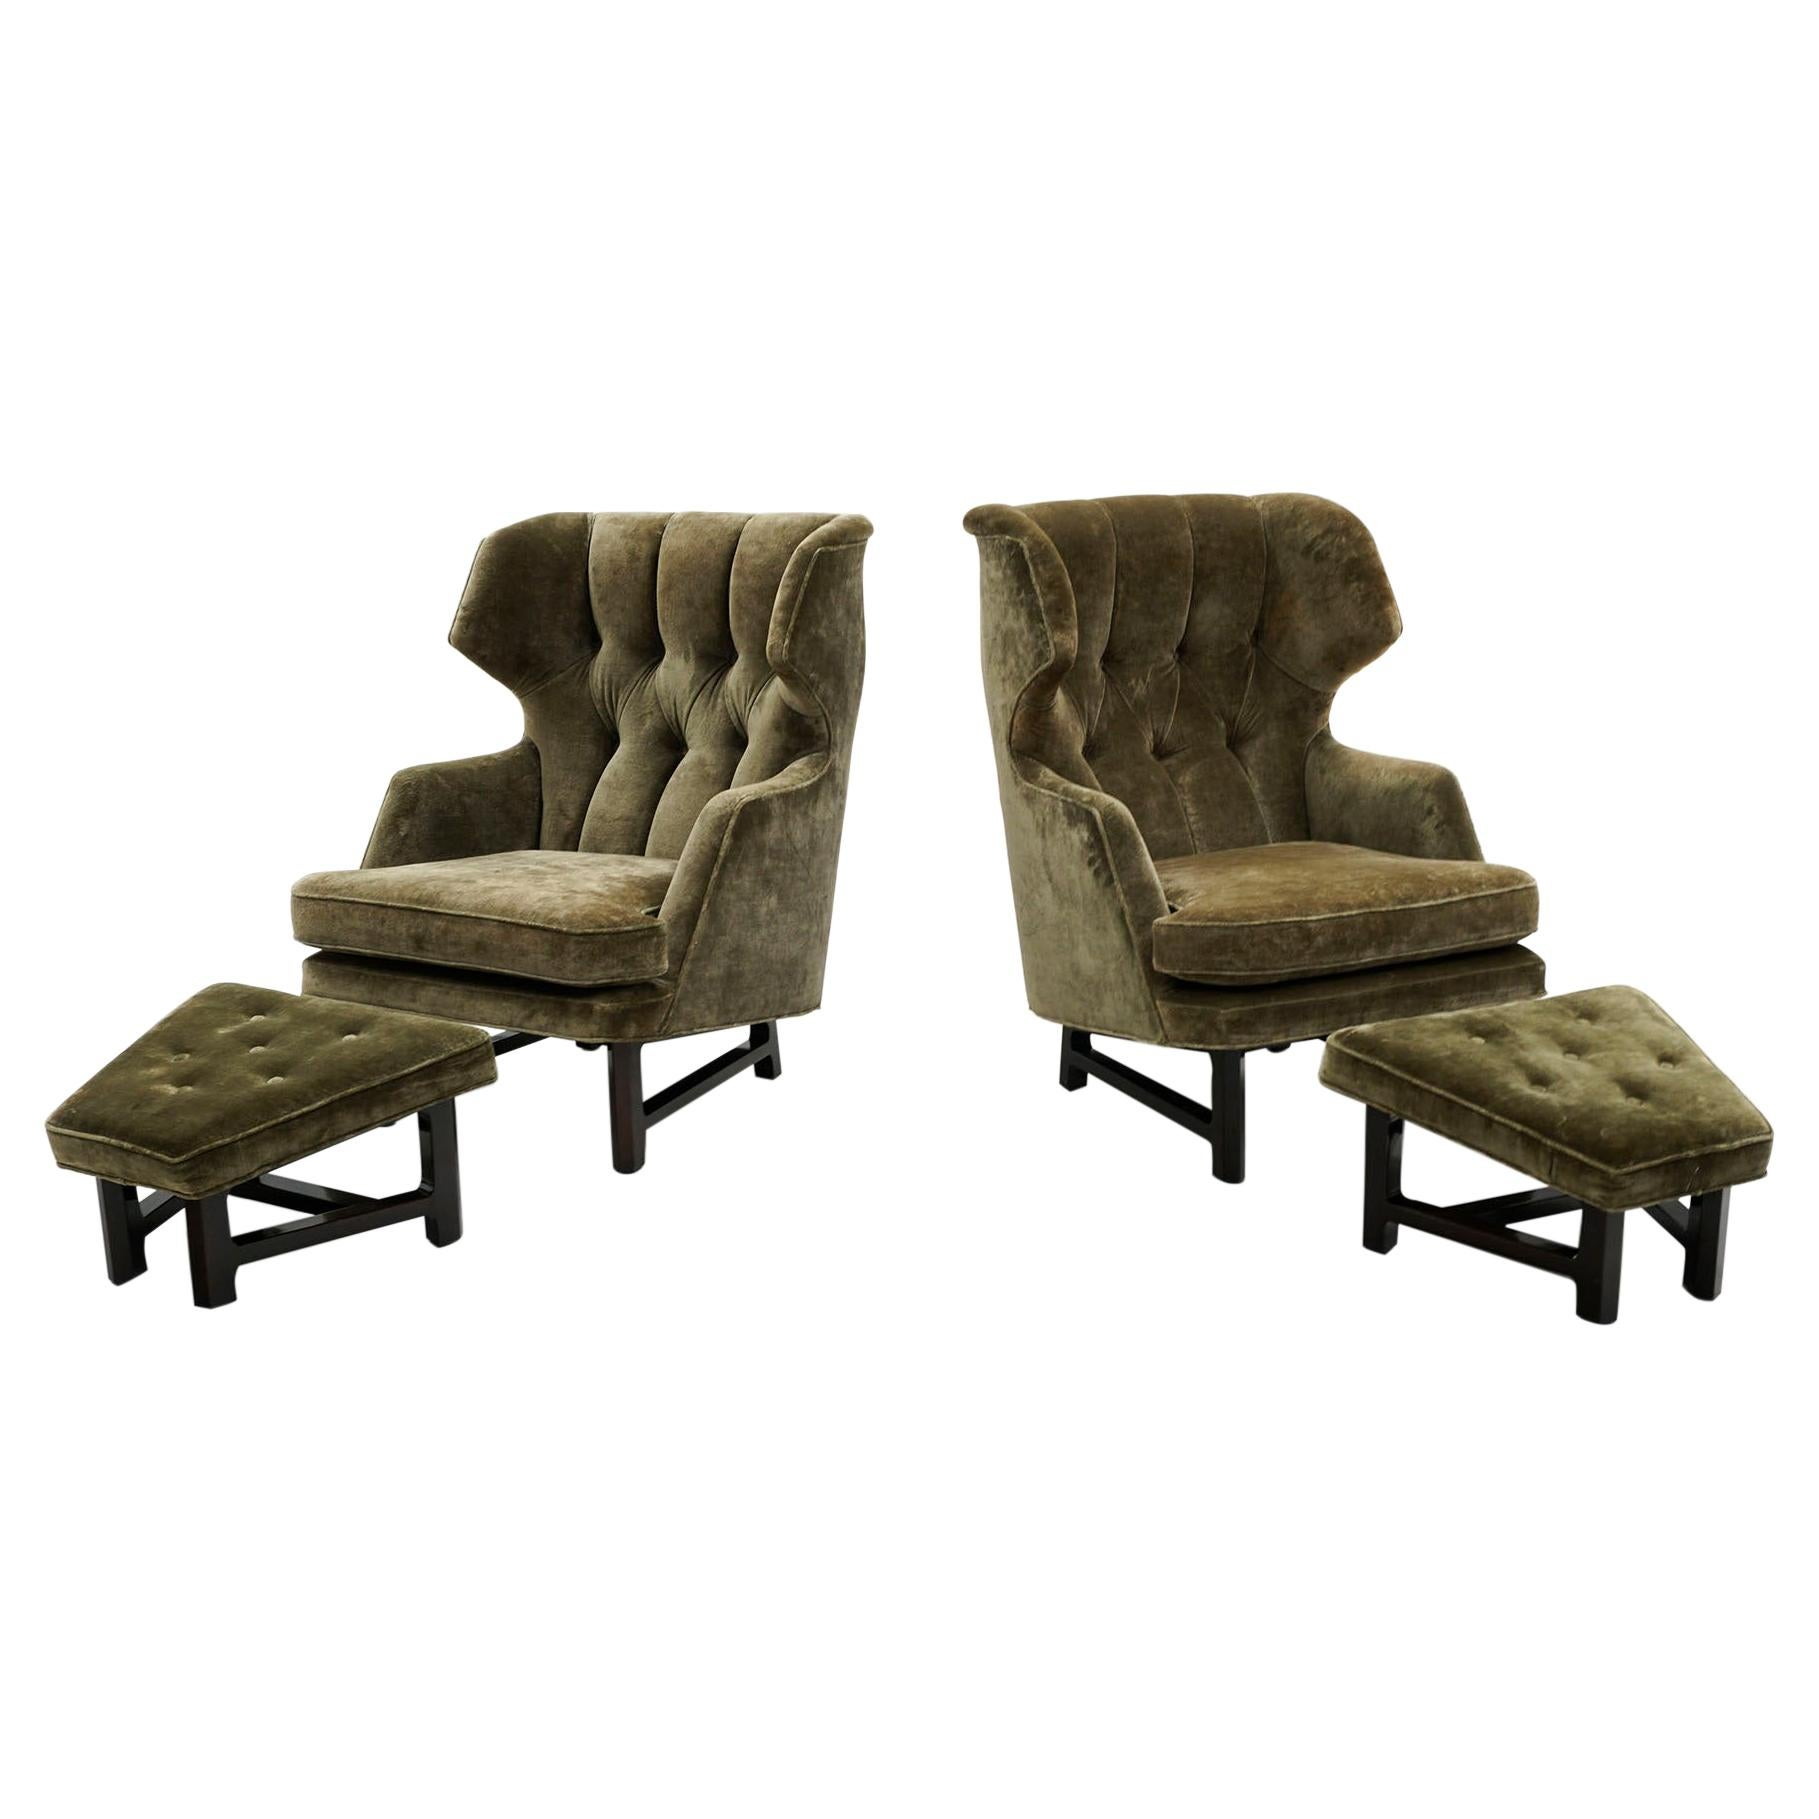 Pair Dunbar Wingback Chairs w/ Ottomans by Edward Wormley for Janus Collection